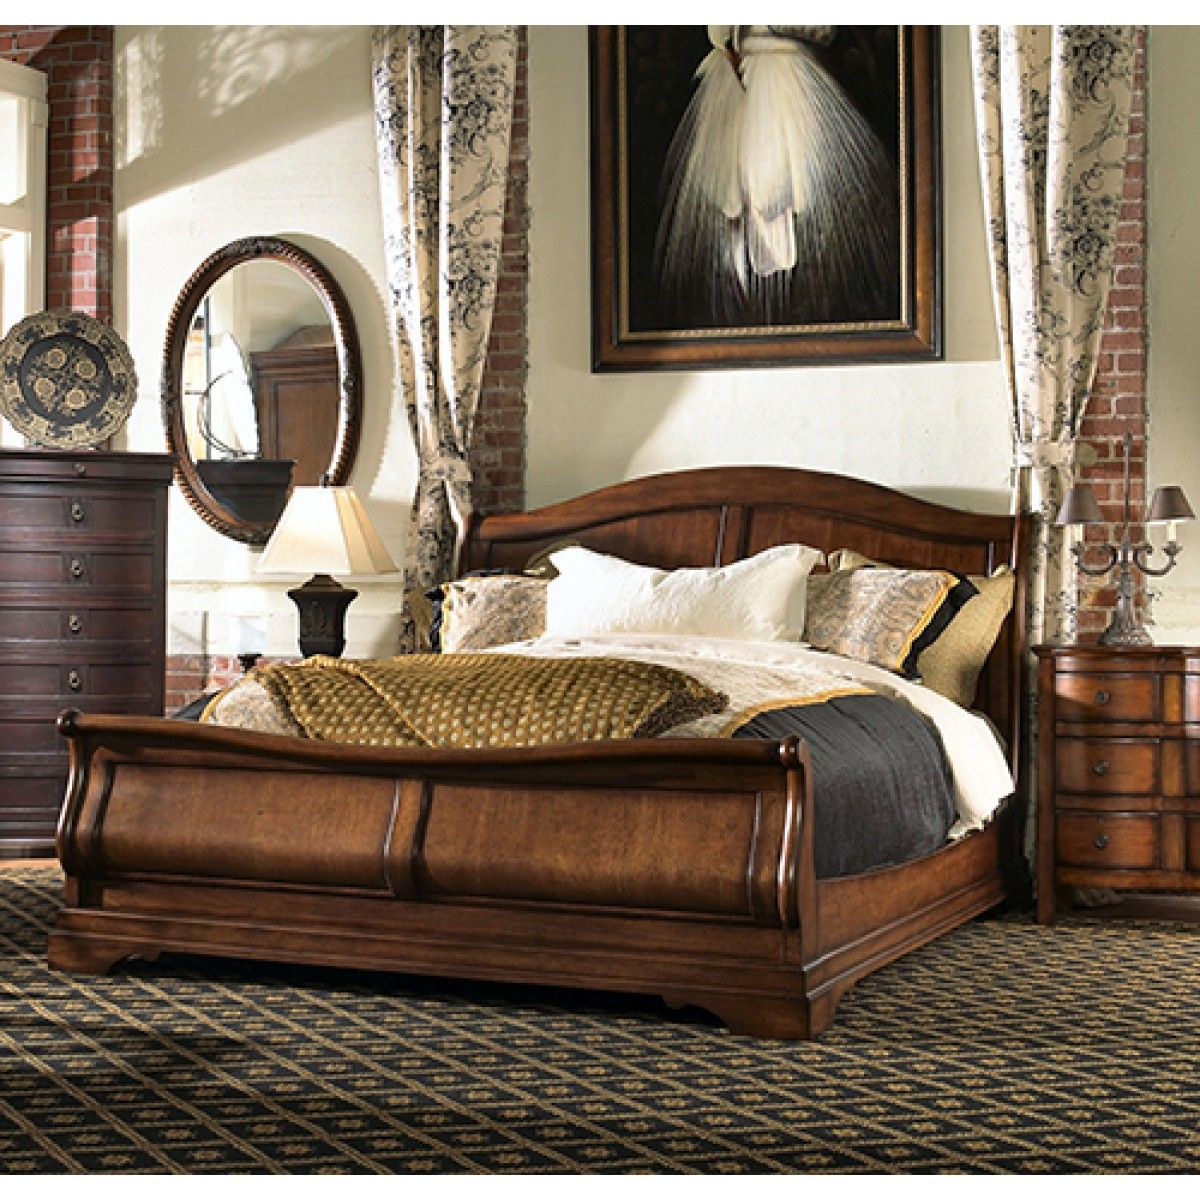 amusing kincaid bedroom furniture. Carriage House King Sleigh Bed By Kincaid Furniture - Belfort | Dream Home- Some Assembly Required Pinterest Furniture, Amusing Bedroom E